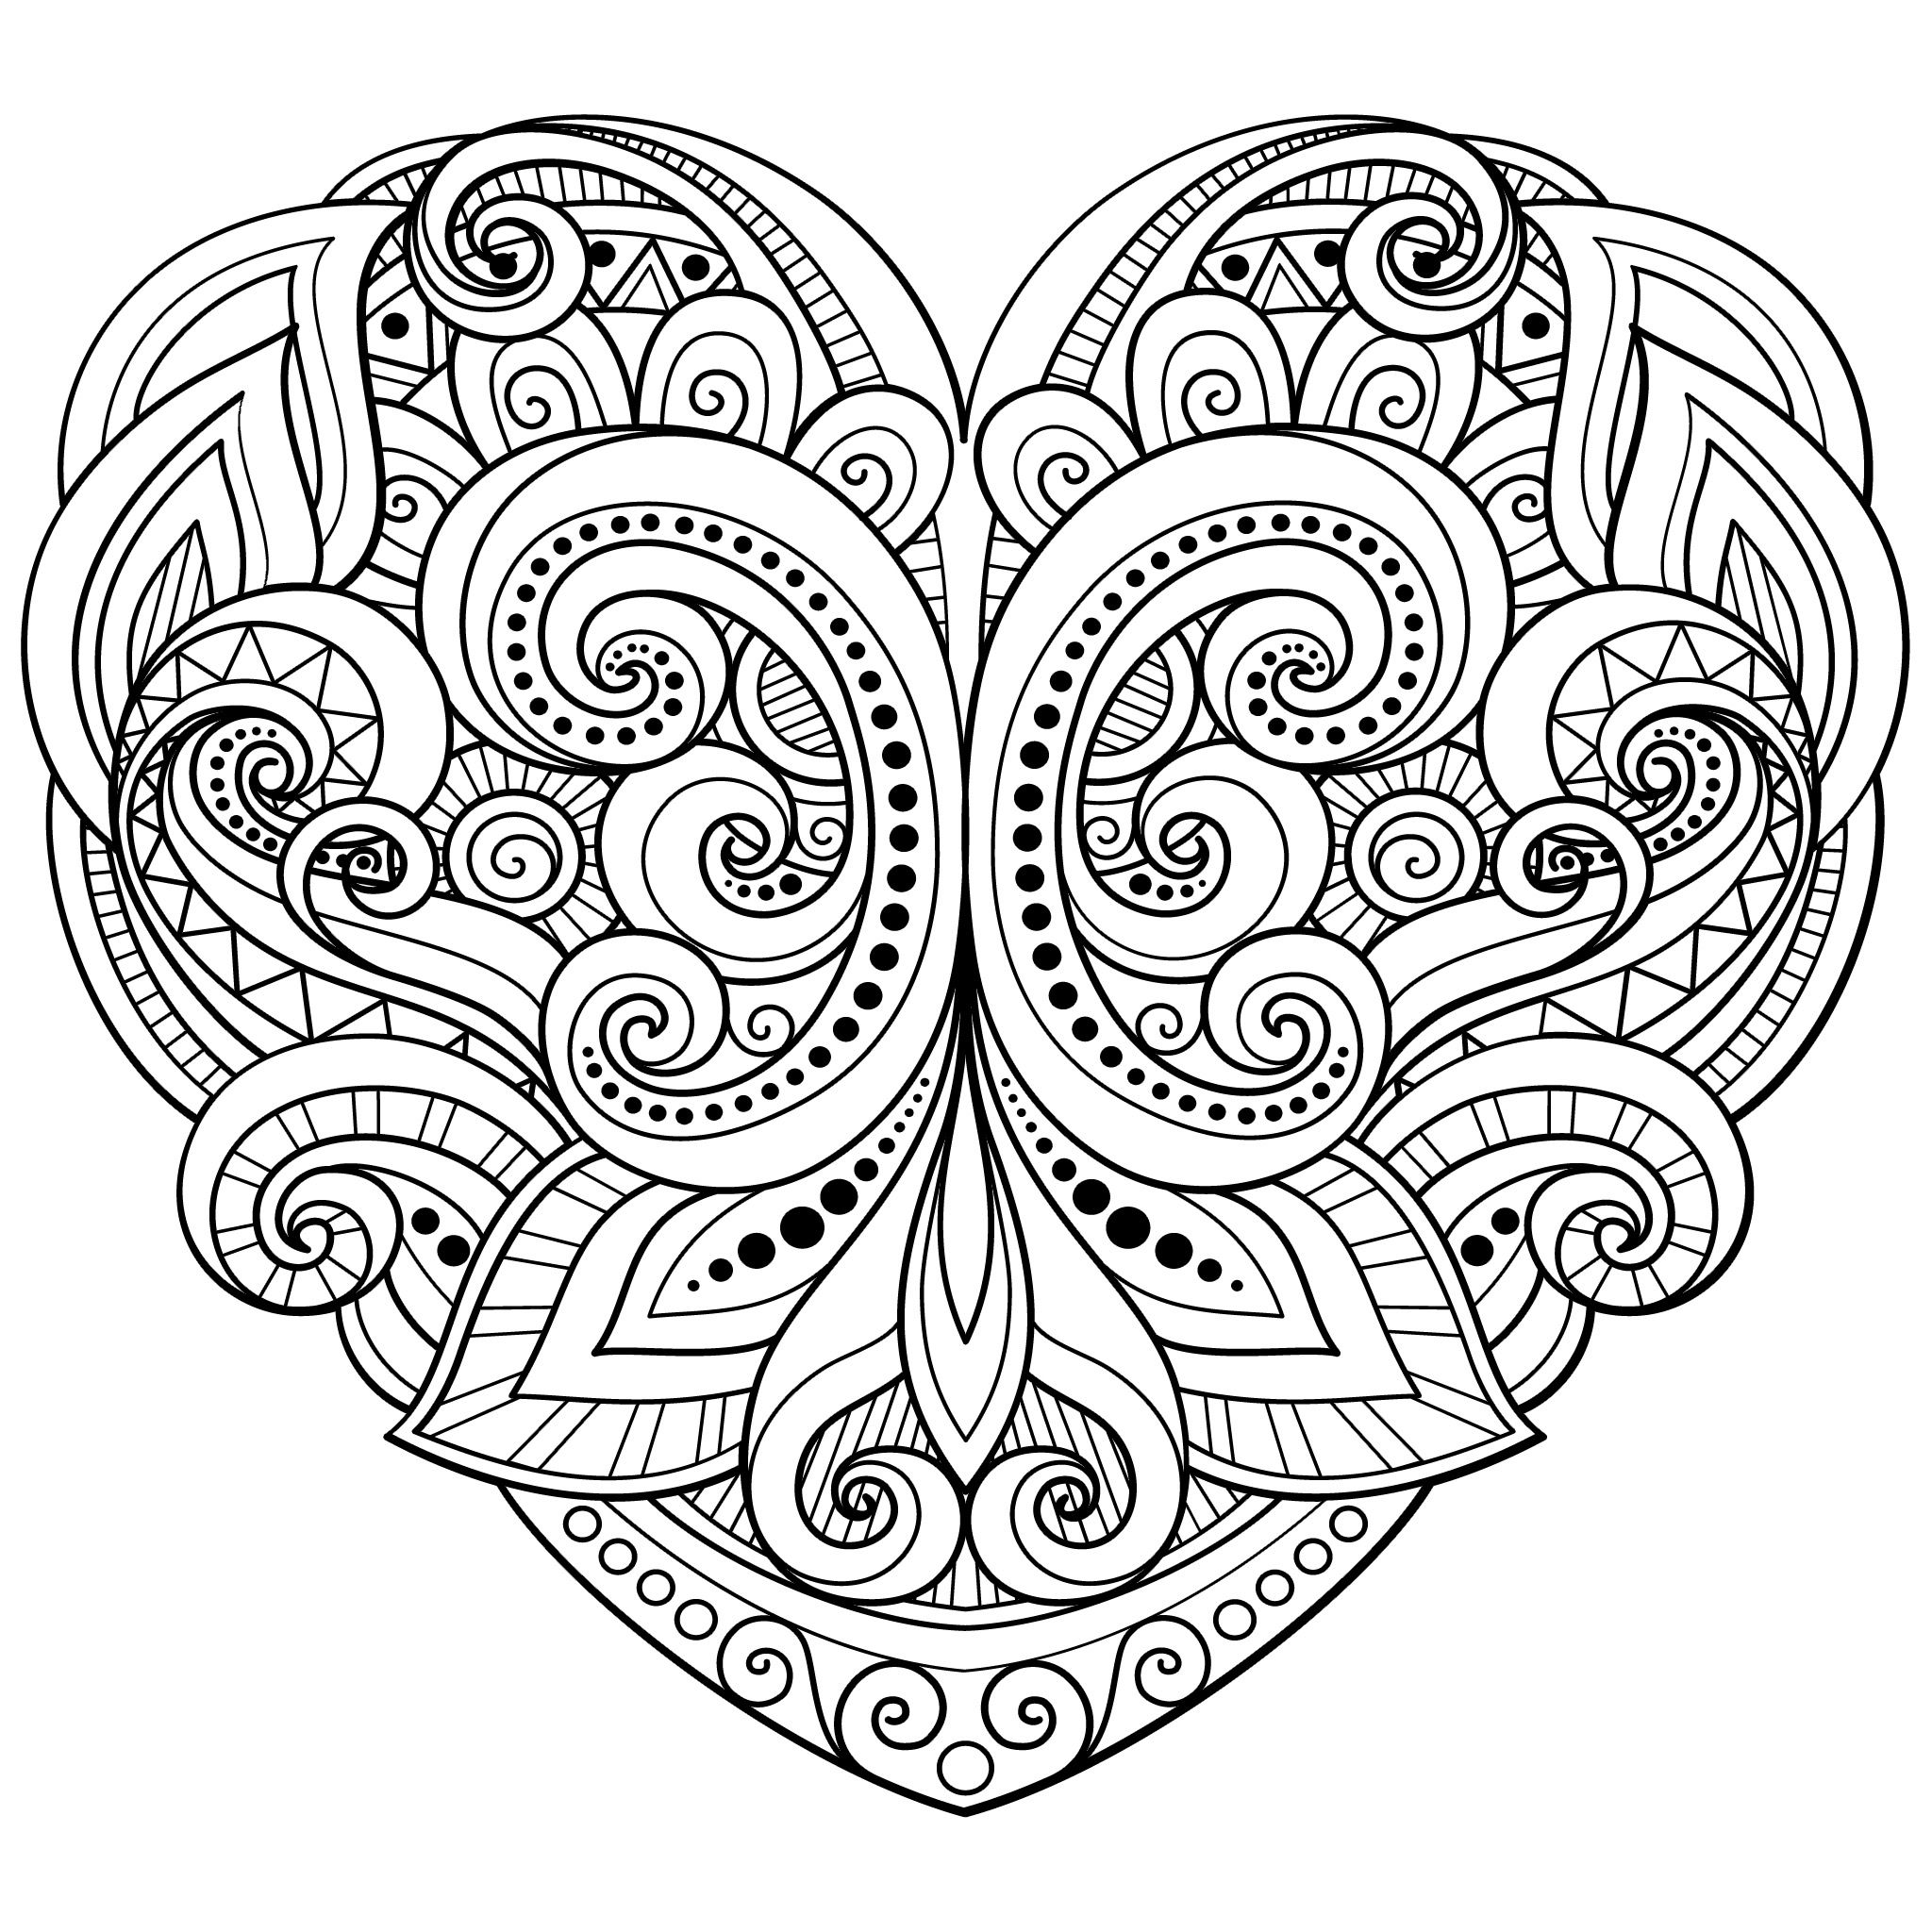 love hearts coloring pages - photo#7